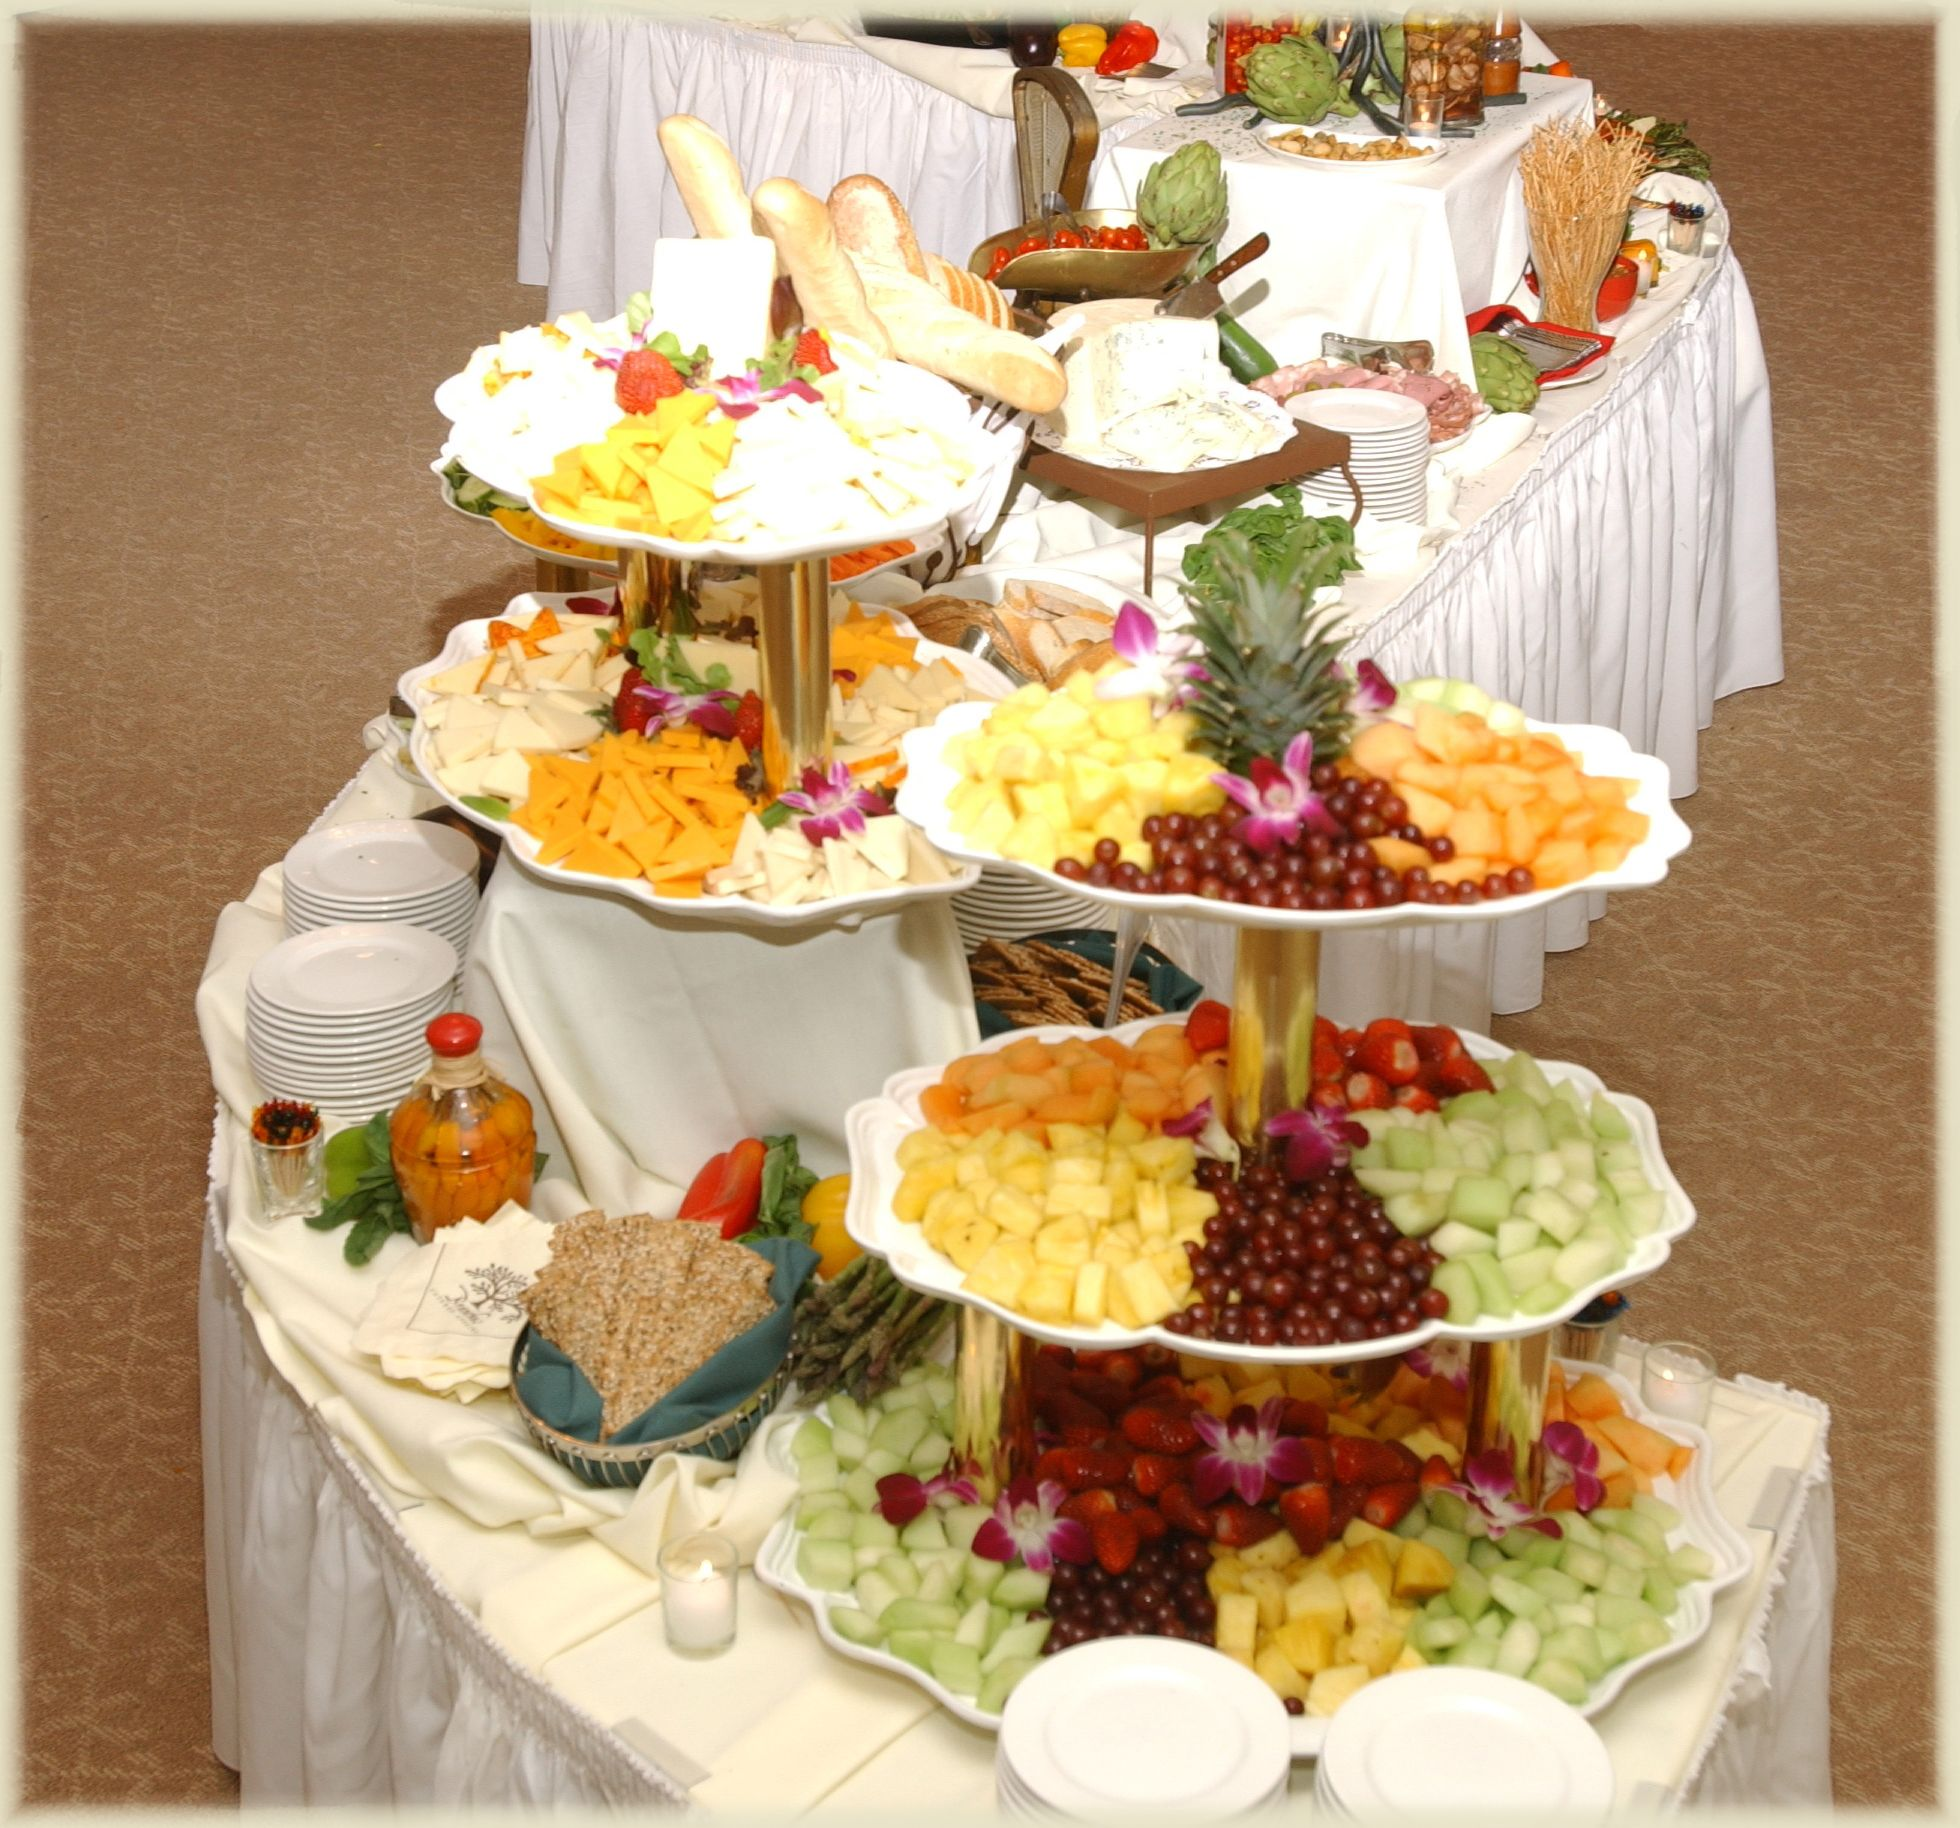 Wedding Caterer: Social Events Menus From Branches